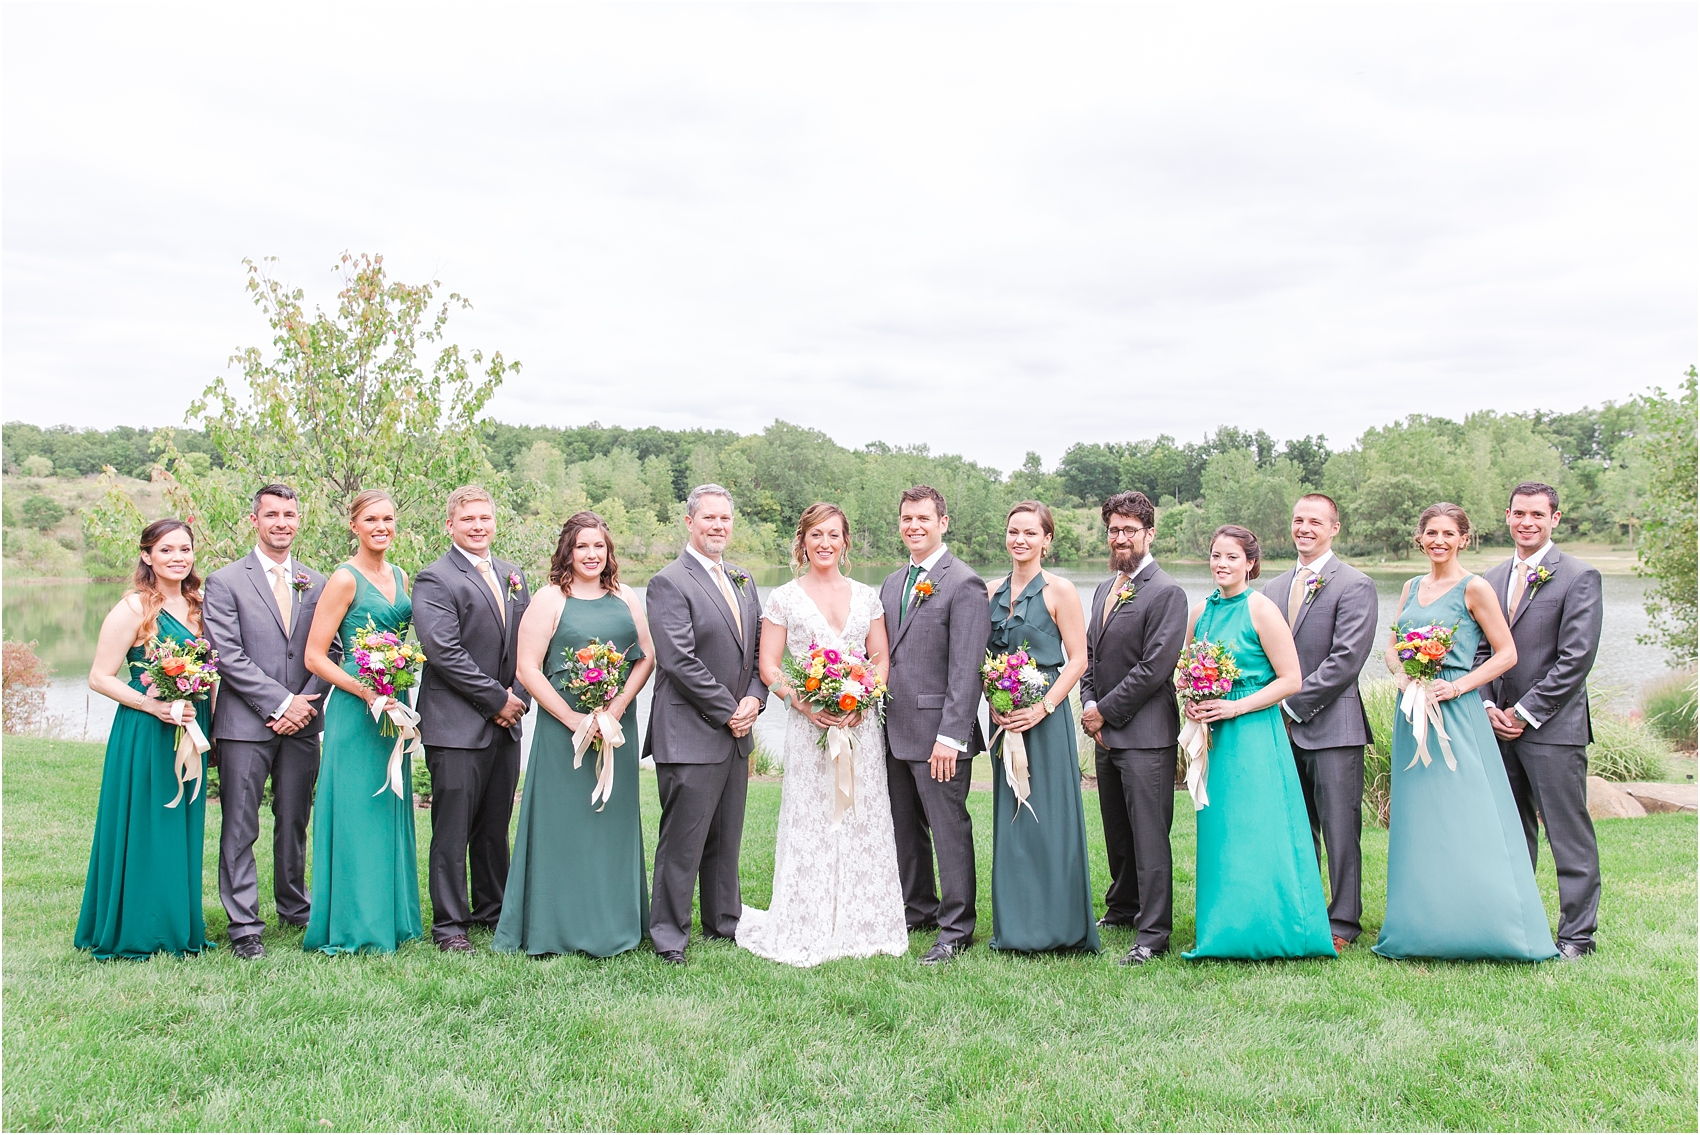 romantic-intimate-backyard-wedding-photos-at-private-estate-in-ann-arbor-mi-by-courtney-carolyn-photography_0041.jpg